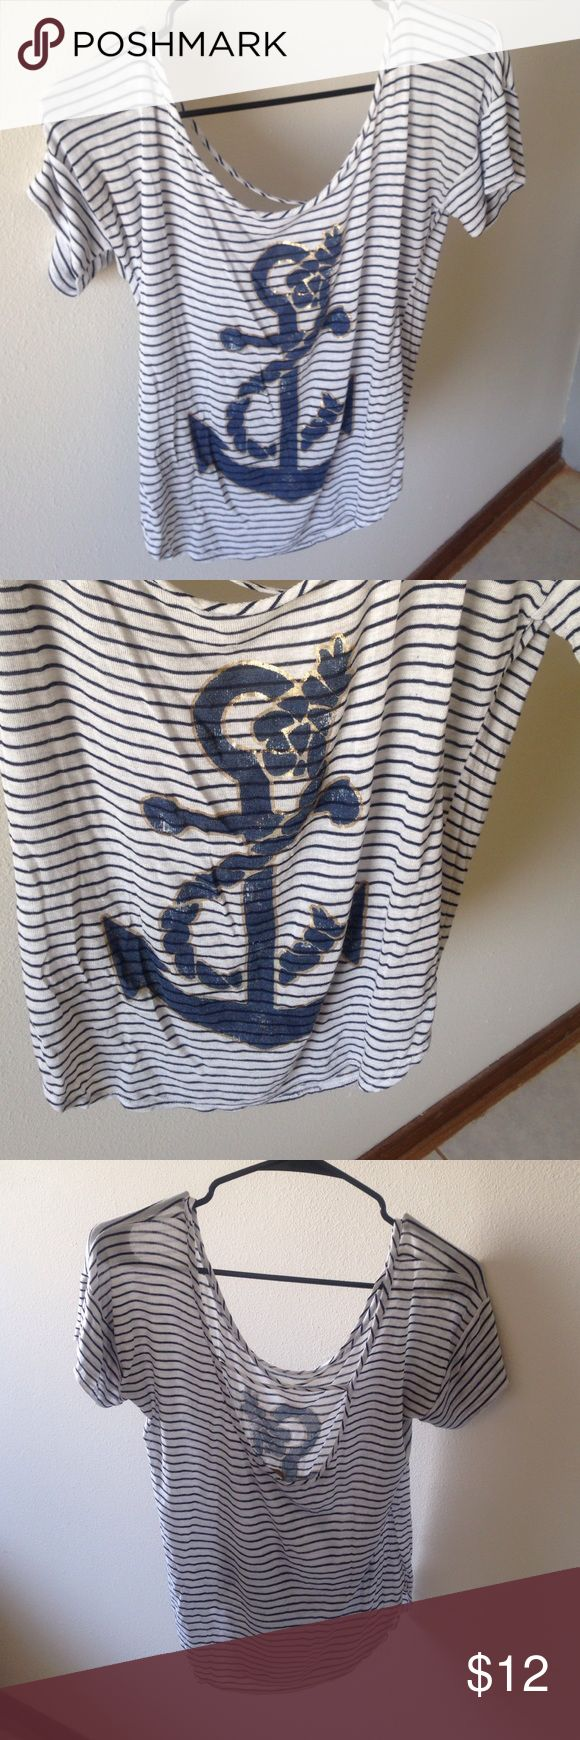 Nautical navy and striped slouchy tee. Low back Navy and white stripes with gold foil. Low back with crisscross detail Tops Tees - Short Sleeve